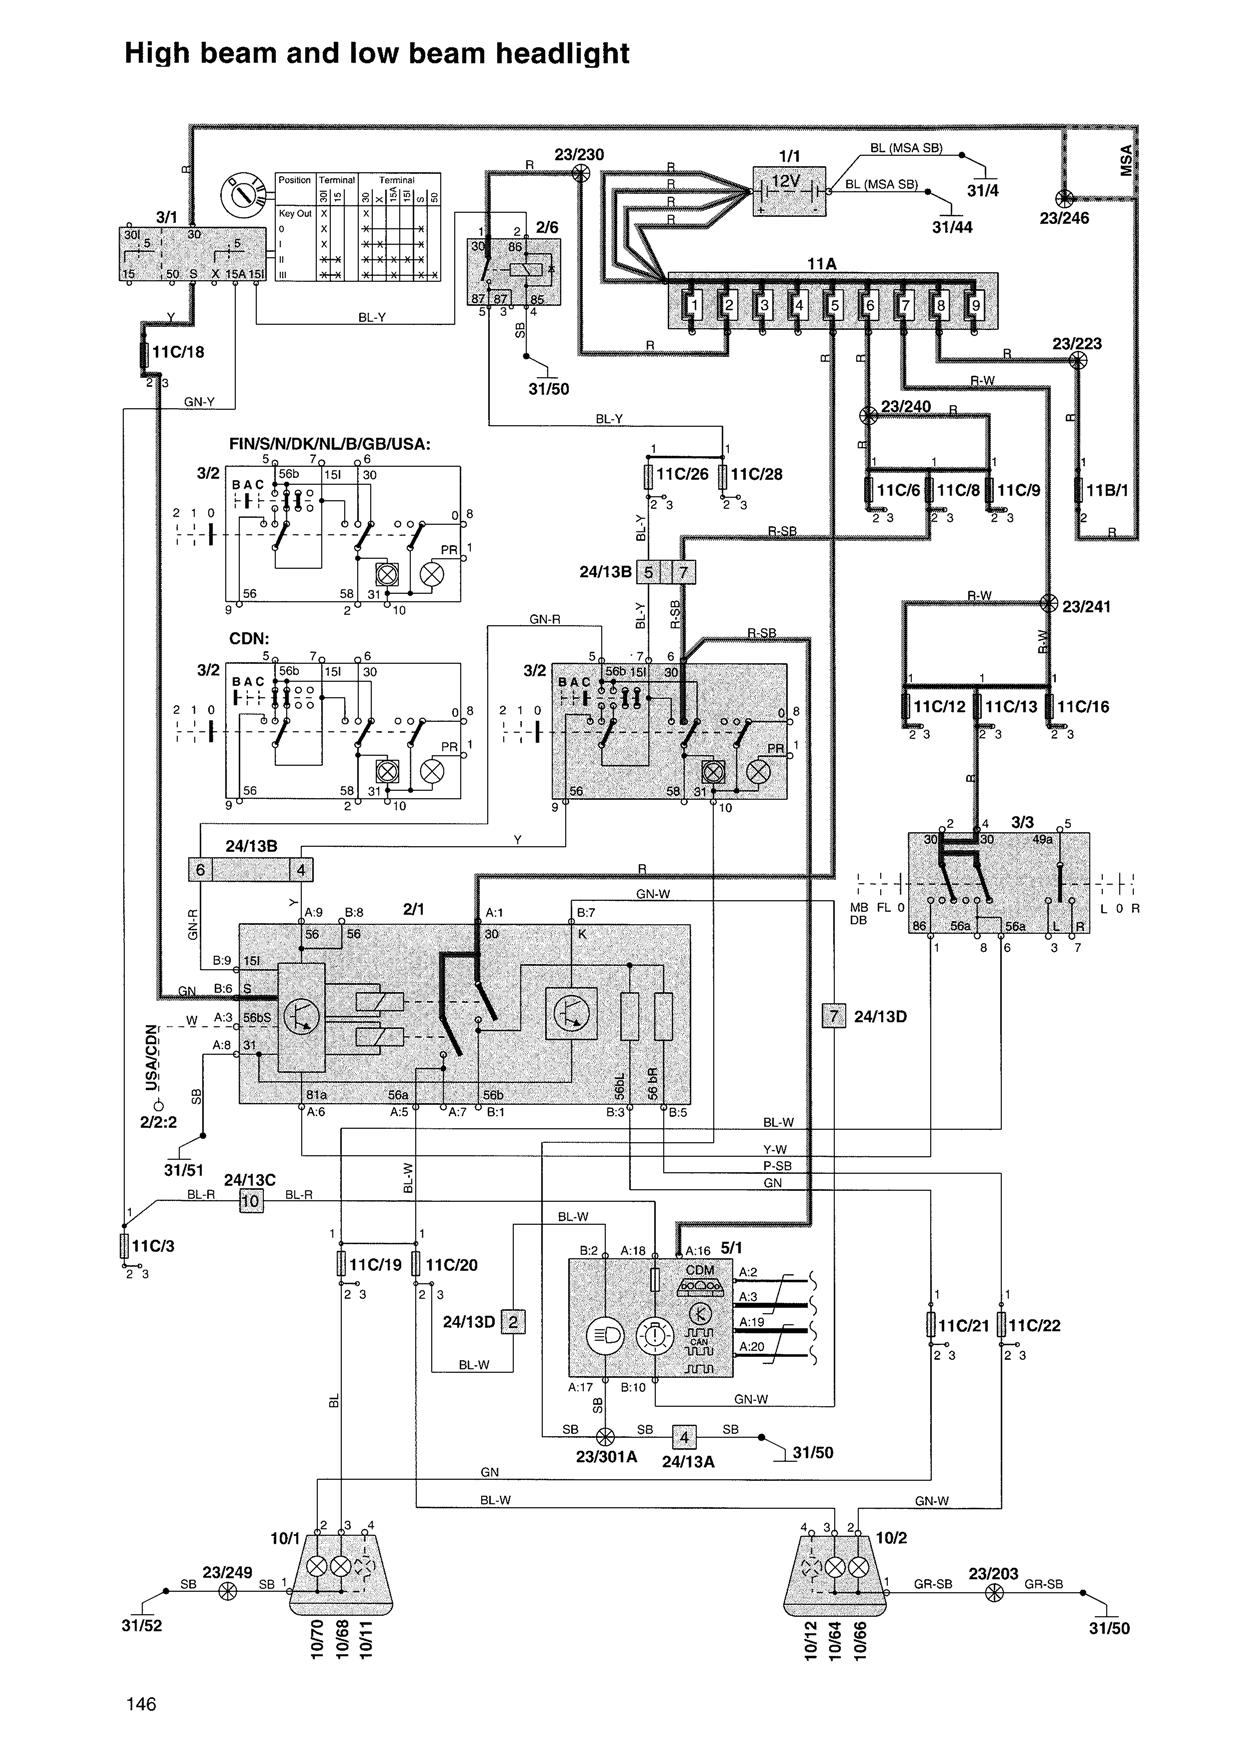 volvo s40 headlight wiring diagram wiring diagram and schematic volvo 960 electrical system and wiring diagram 1992